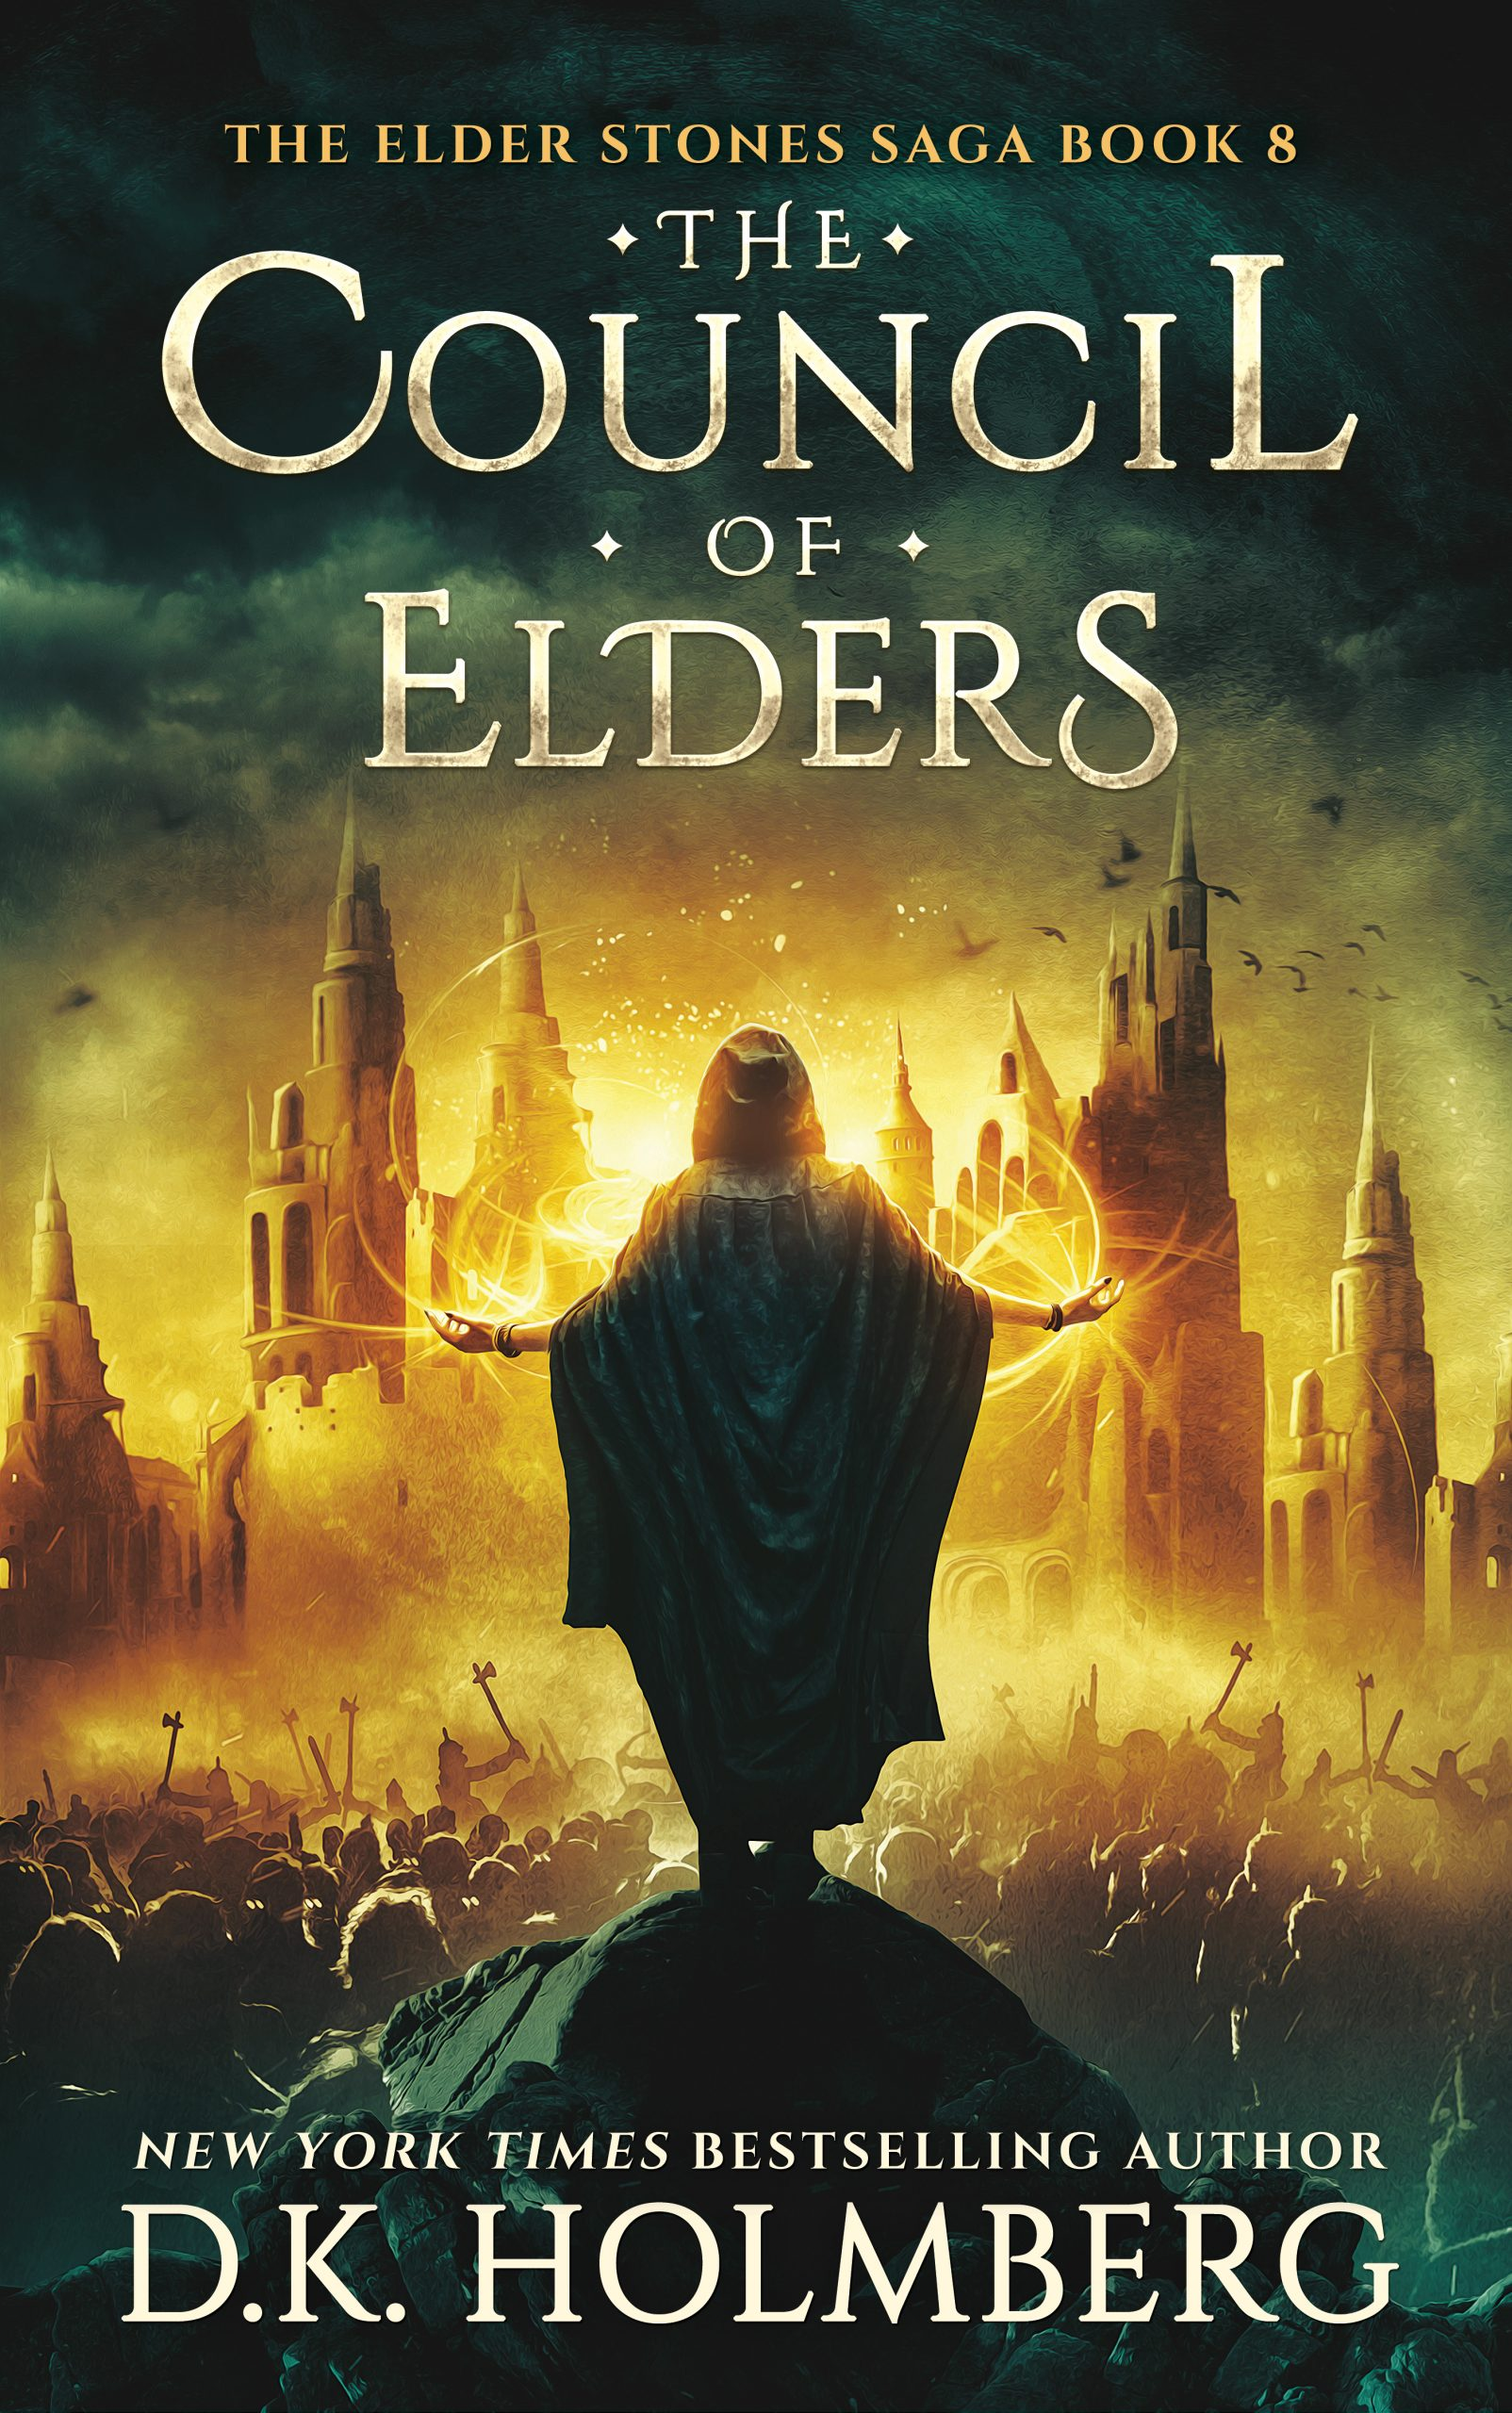 https://www.dkholmberg.com/wp-content/uploads/2019/11/The-Council-of-Elders-Ebook-scaled.jpg